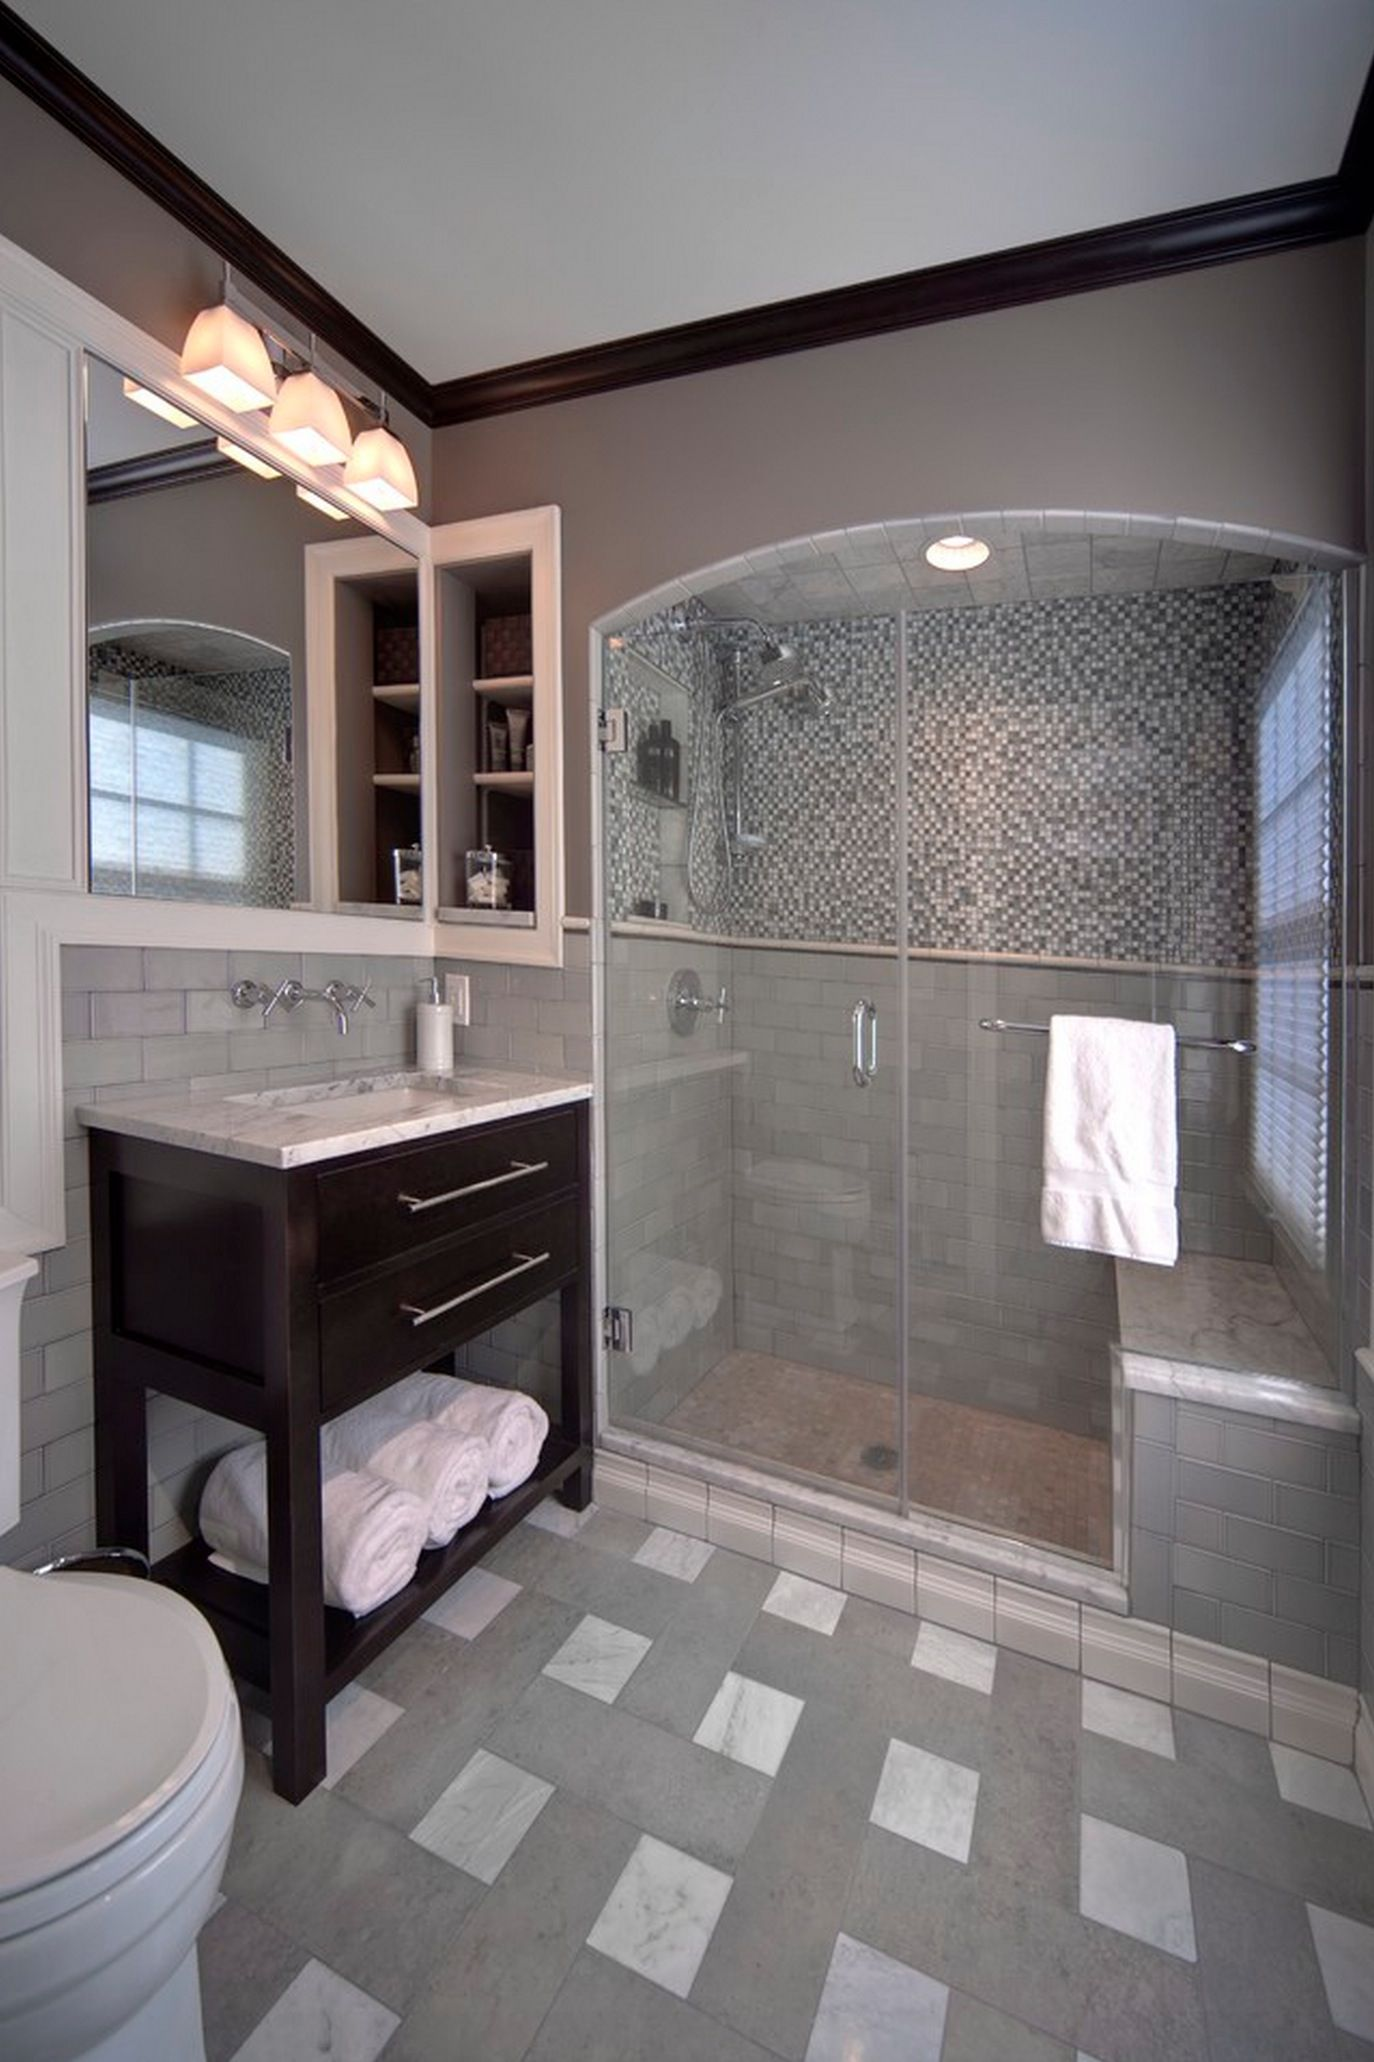 Bathroom Design August 2014 86